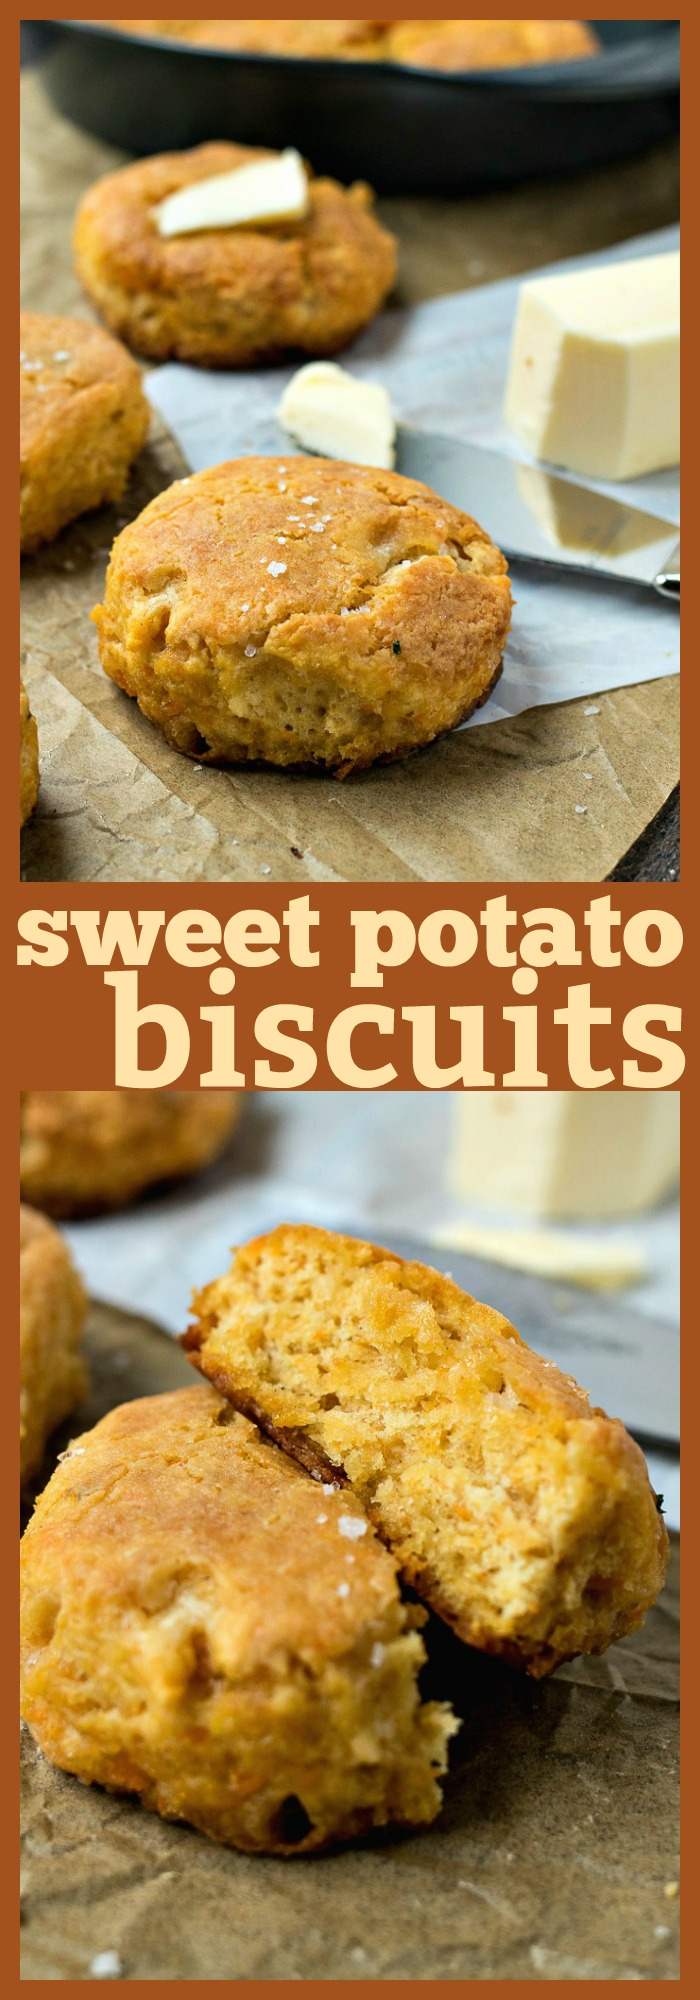 Sweet Potato Biscuits photo collage